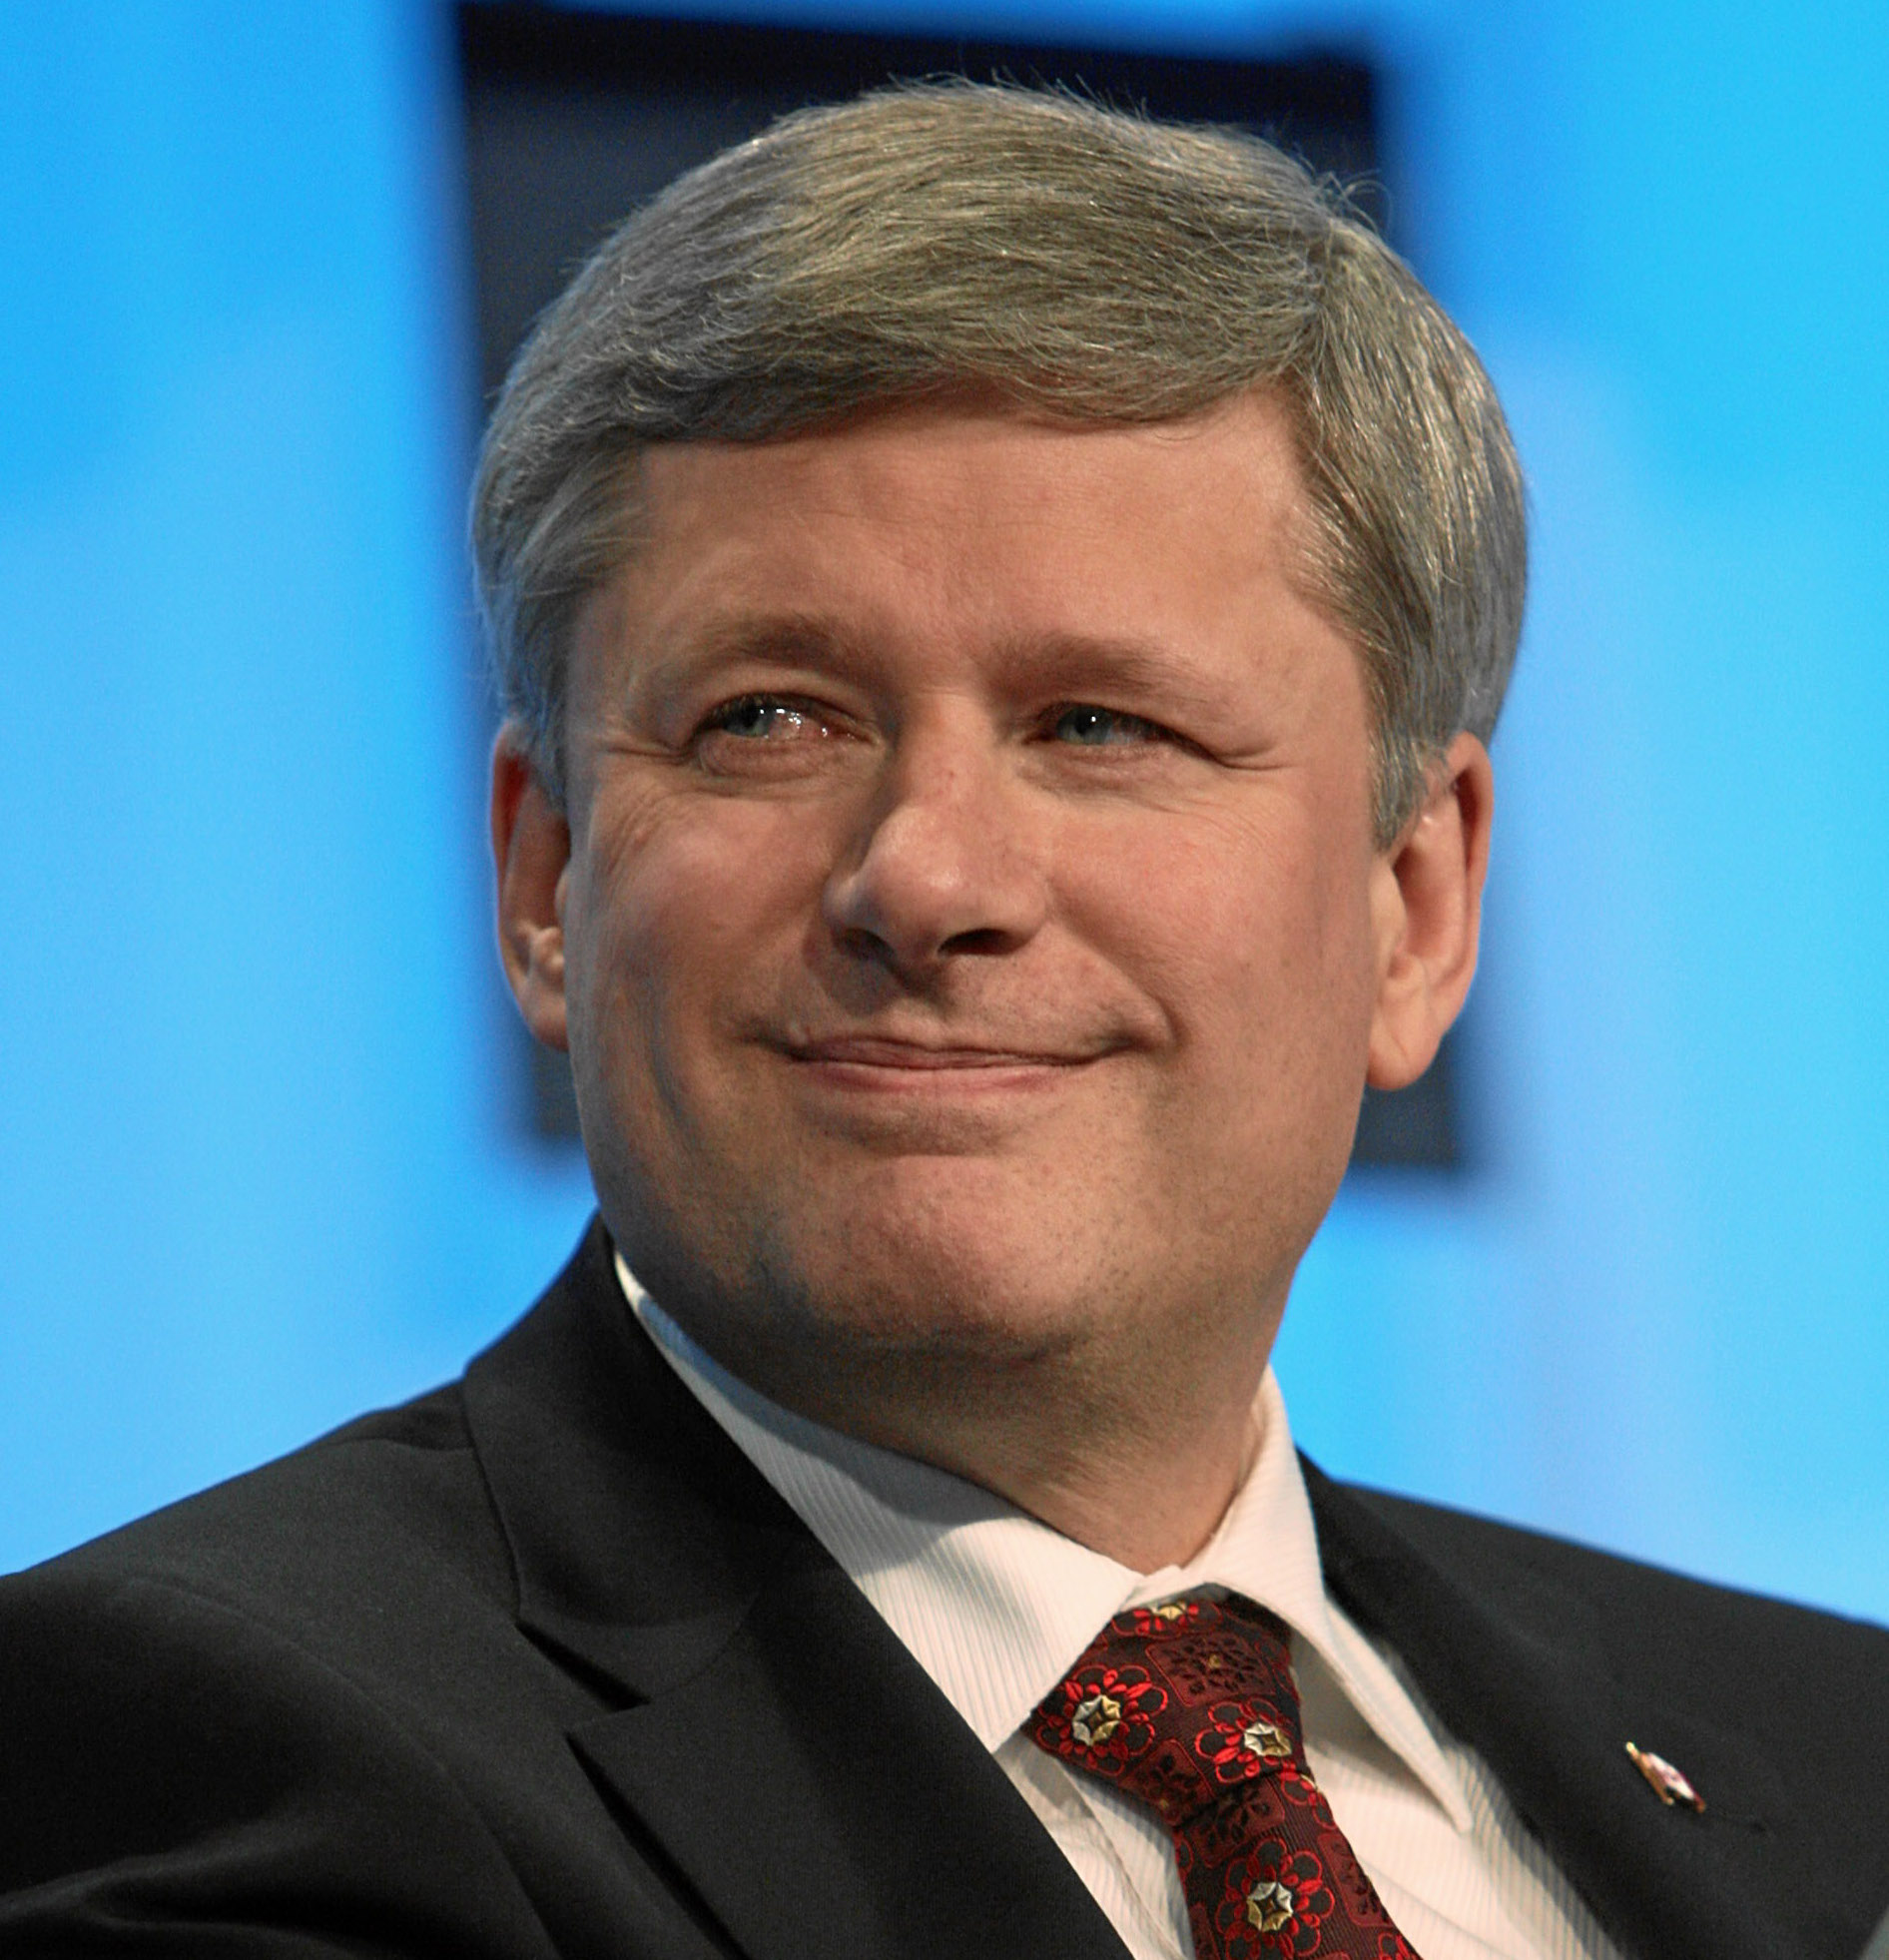 stephen harper height